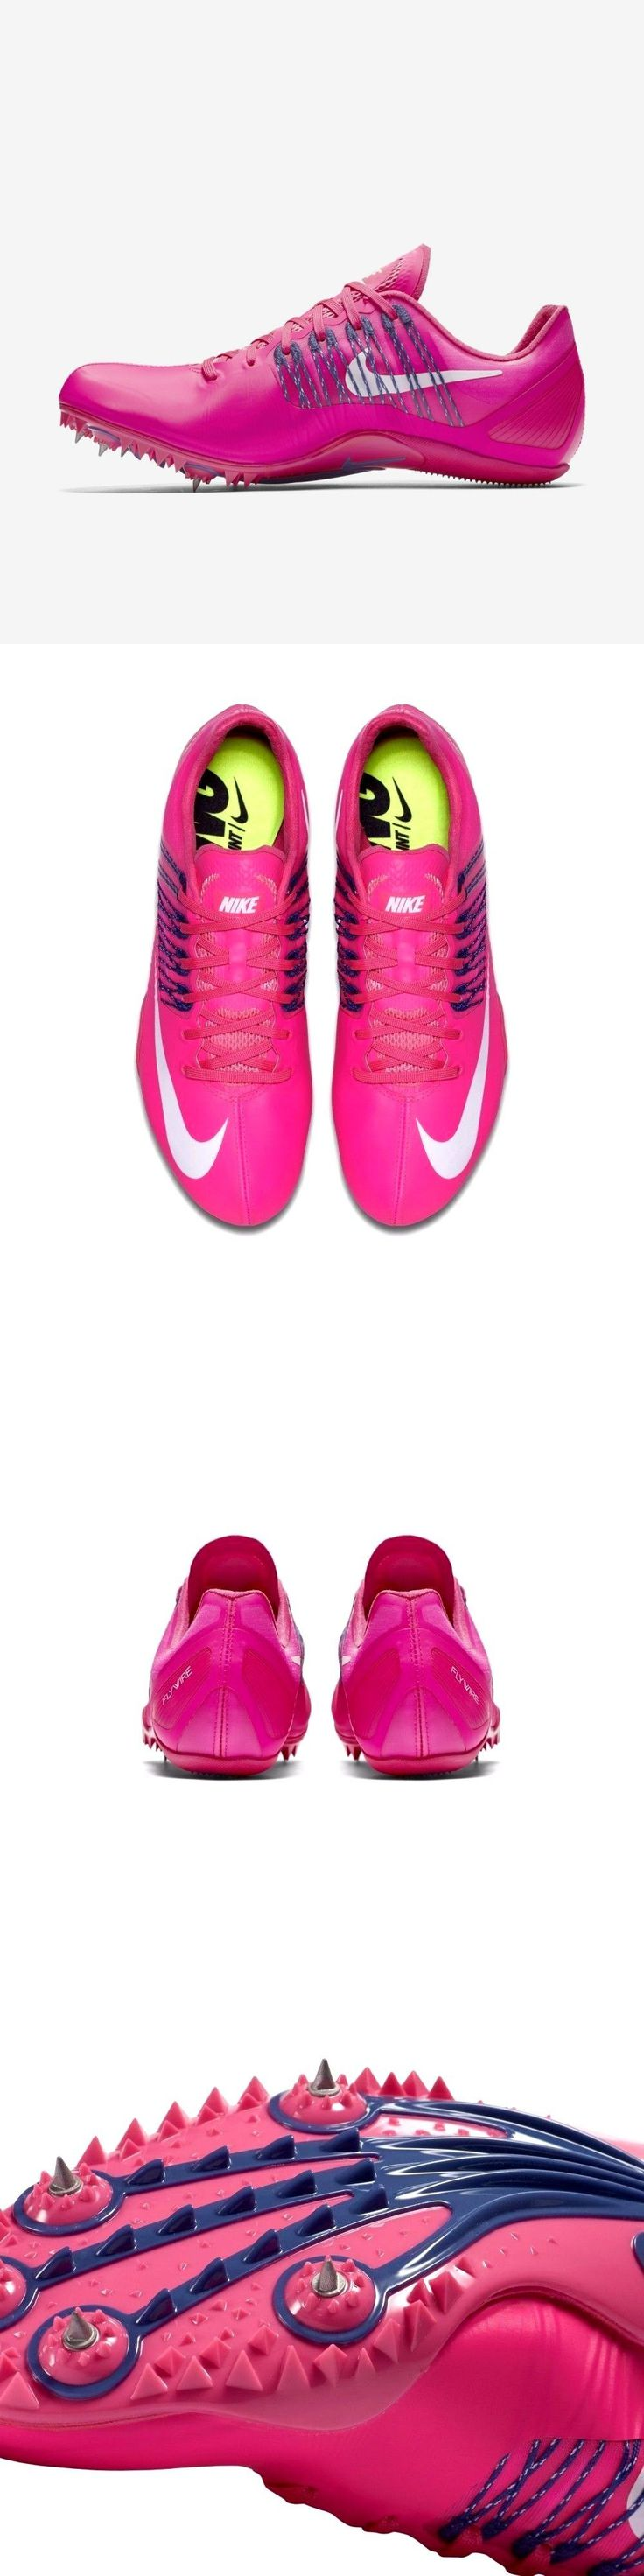 Track and Field 106981: New Nike Zoom Celar 5 Sprint Track Spikes Hyper Hot Pink 629226-615 Mult Sizes -> BUY IT NOW ONLY: $31.6 on eBay!